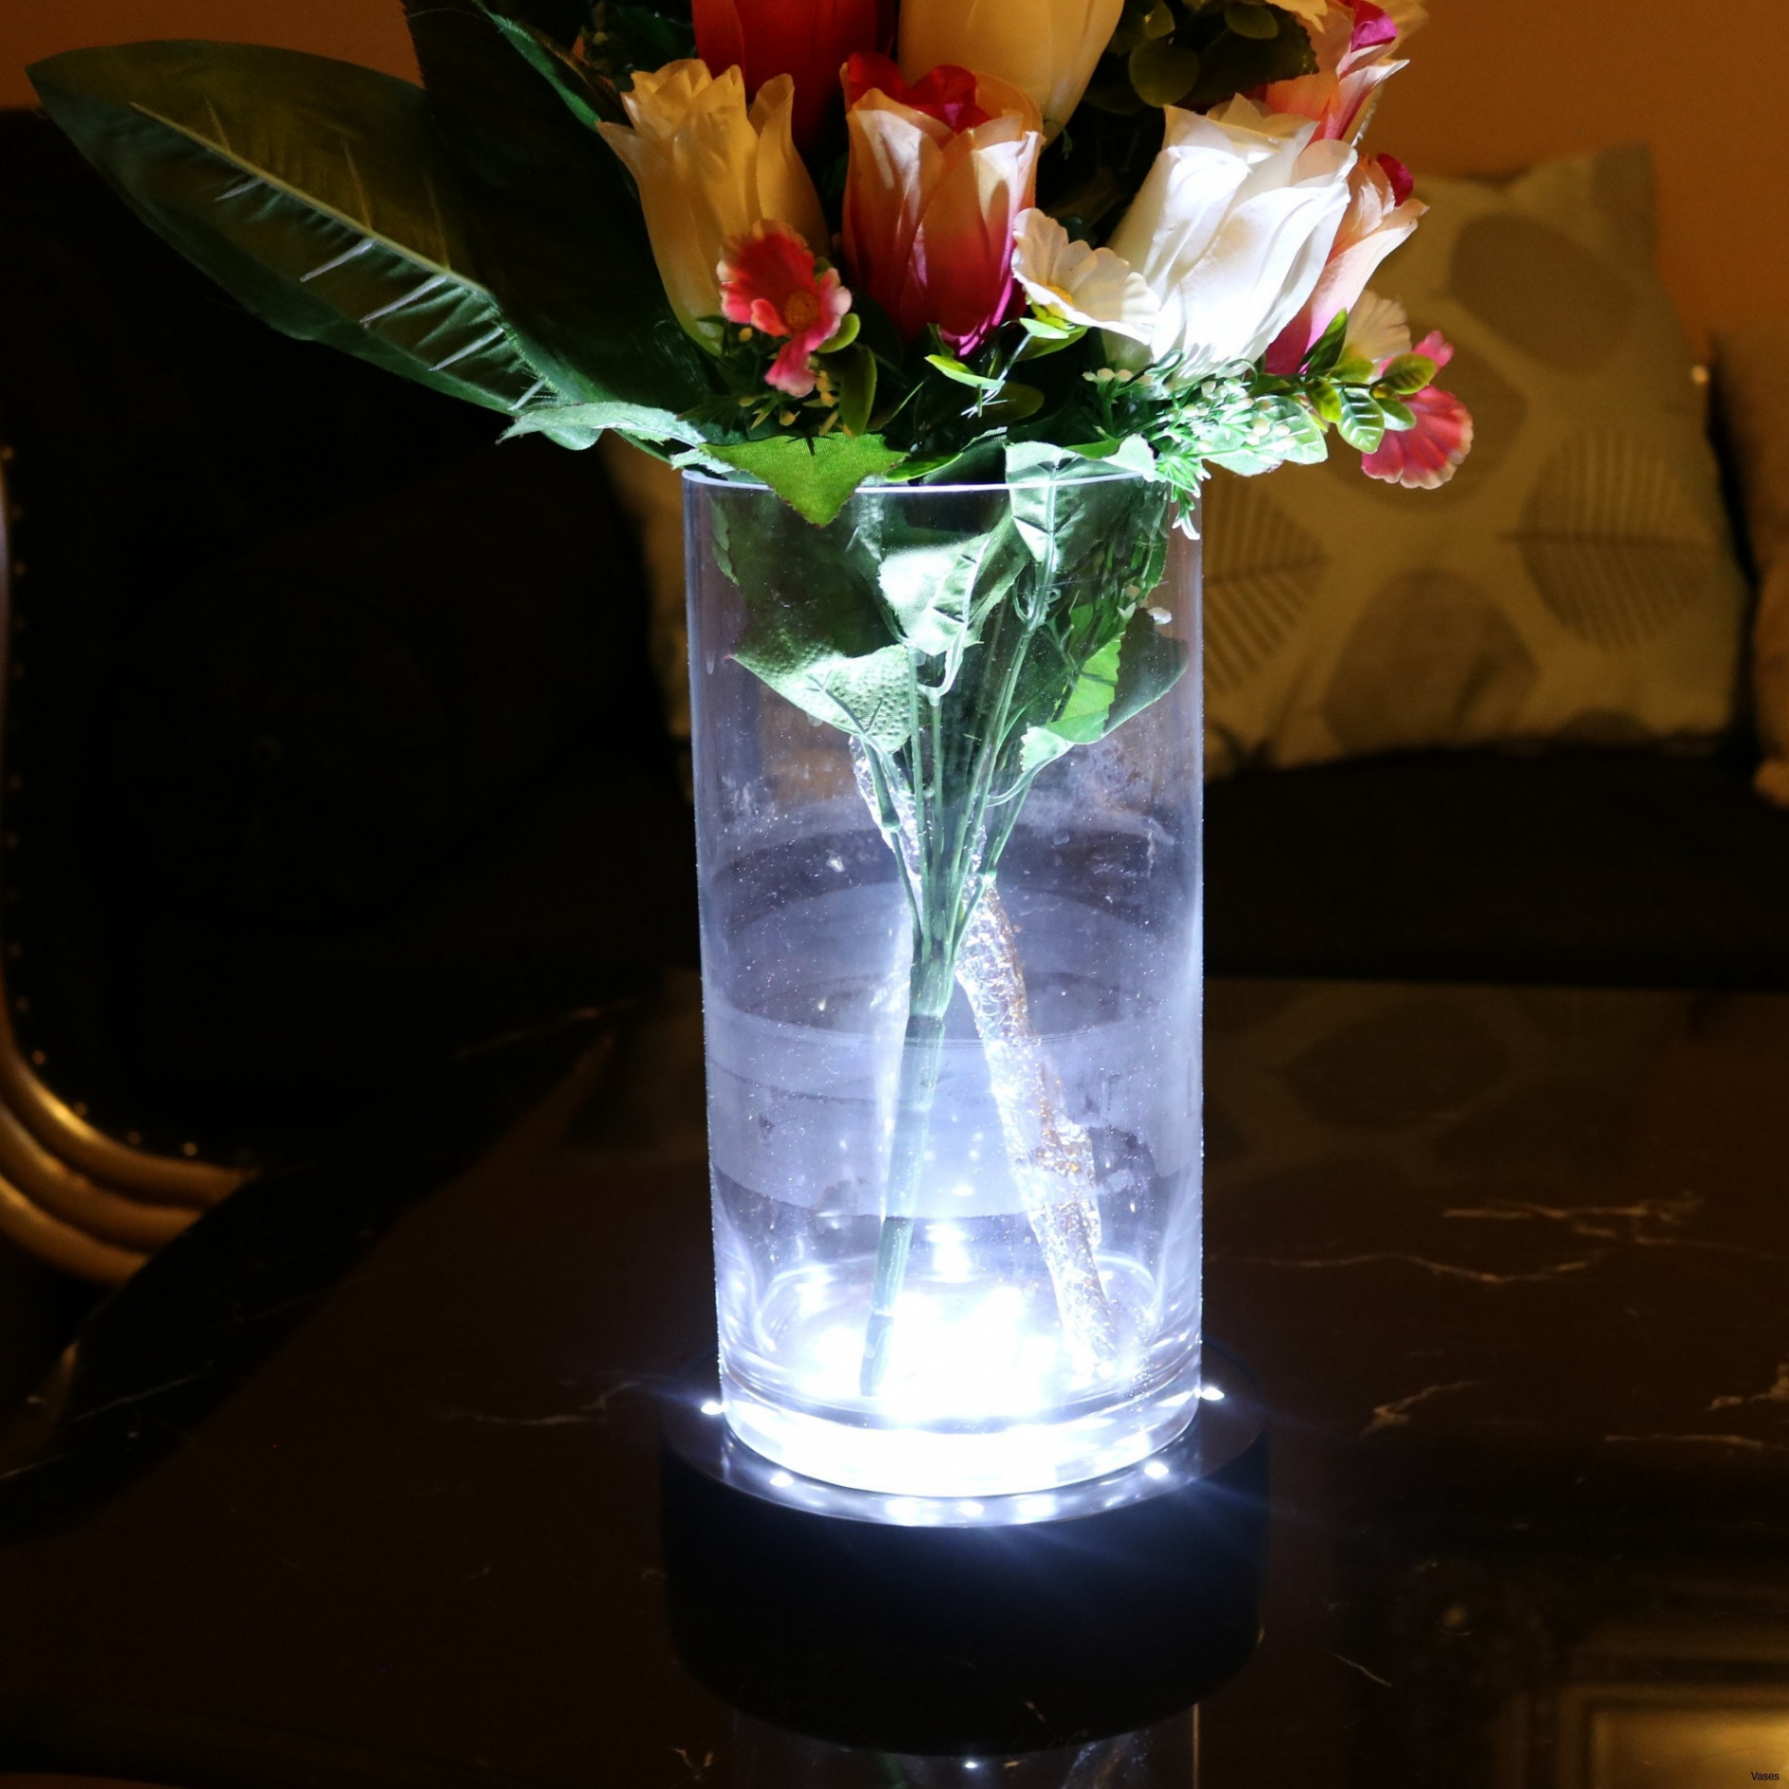 vases disposable plastic single cheap flower rose vasei 0d design vase selber machen vase selber machen